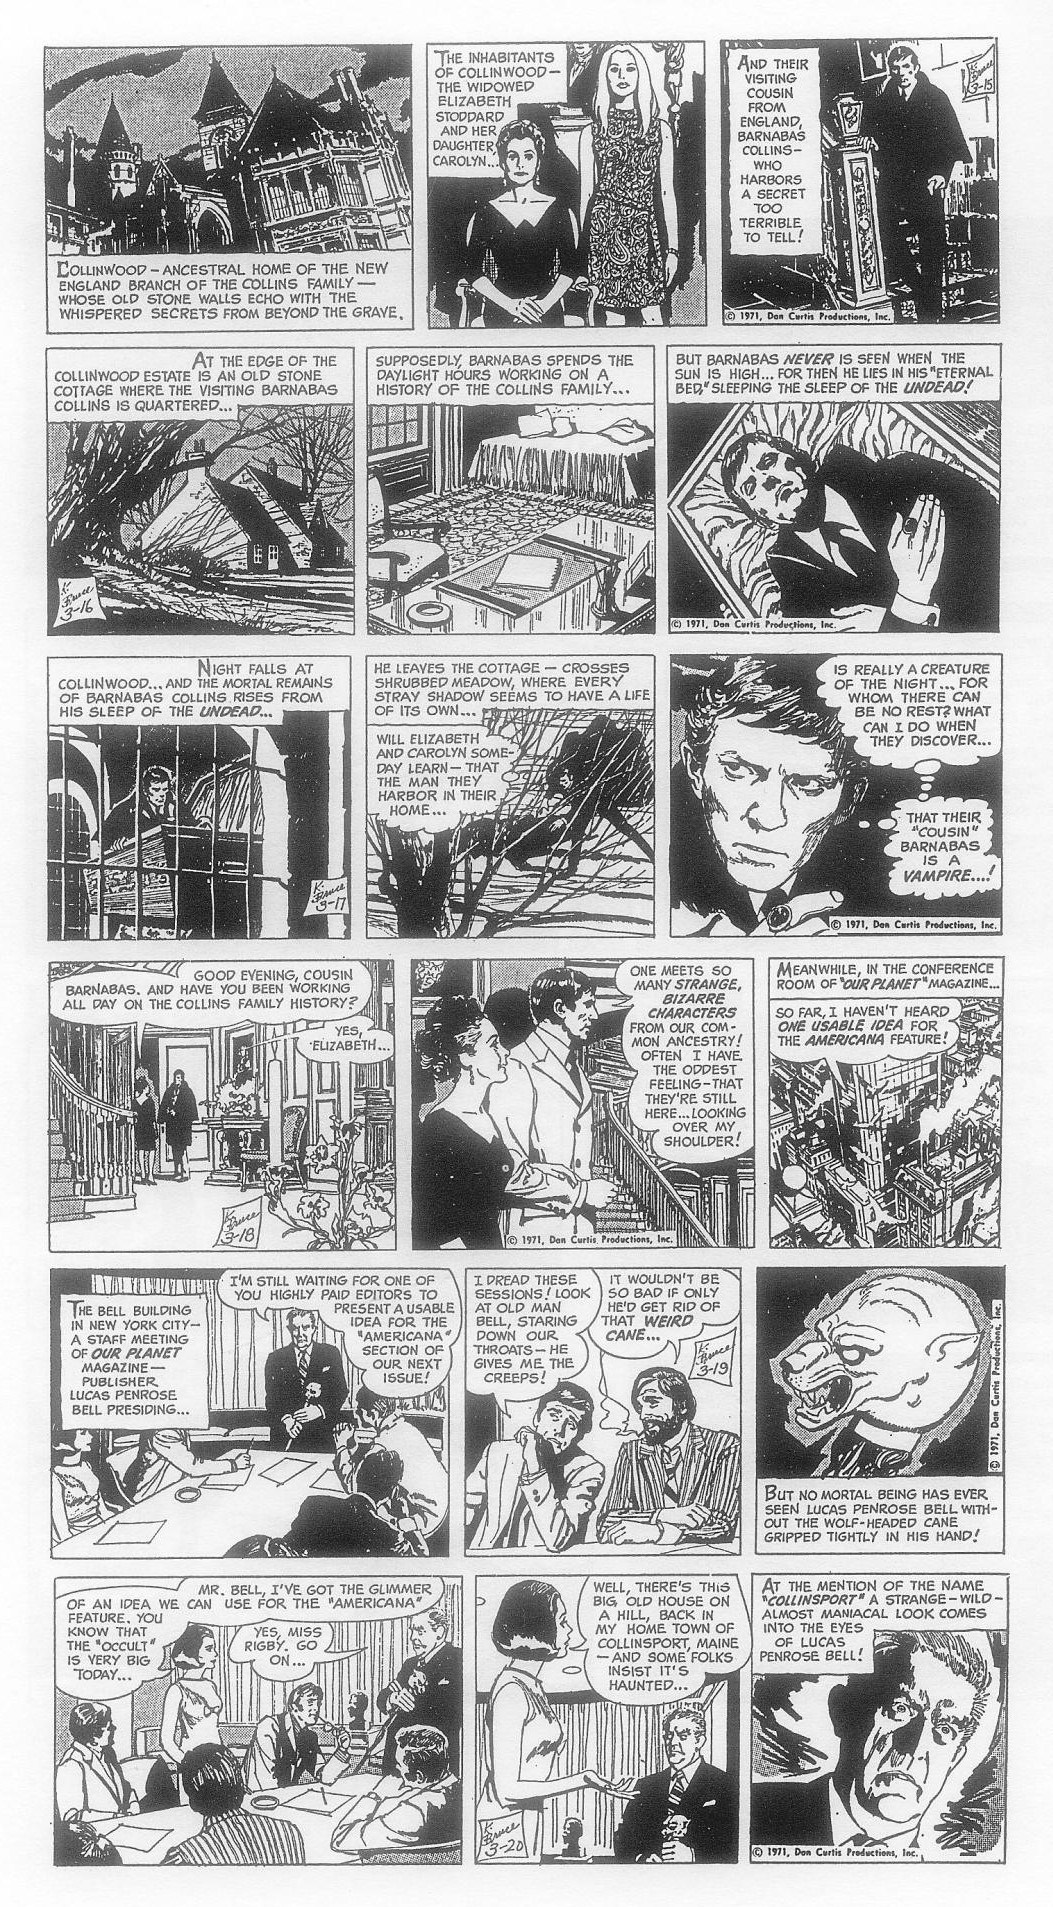 The first week of Dark Shadows strips, with art from Ken Bald.